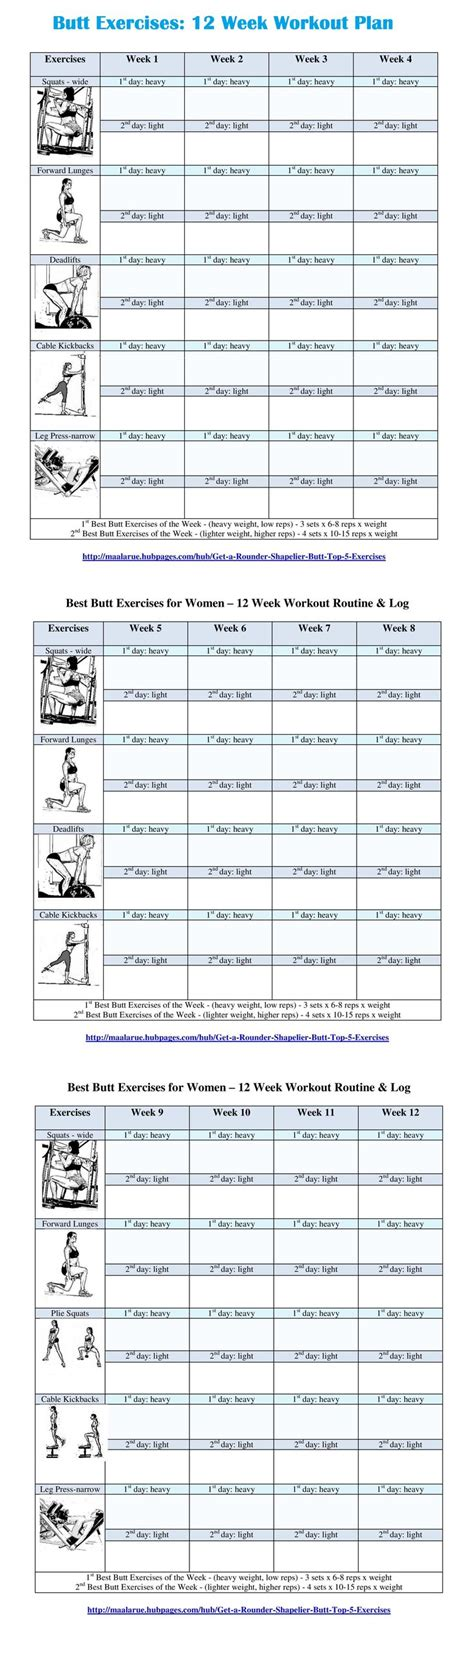 work out plans for home best butt workouts for women free printable 12 week butt